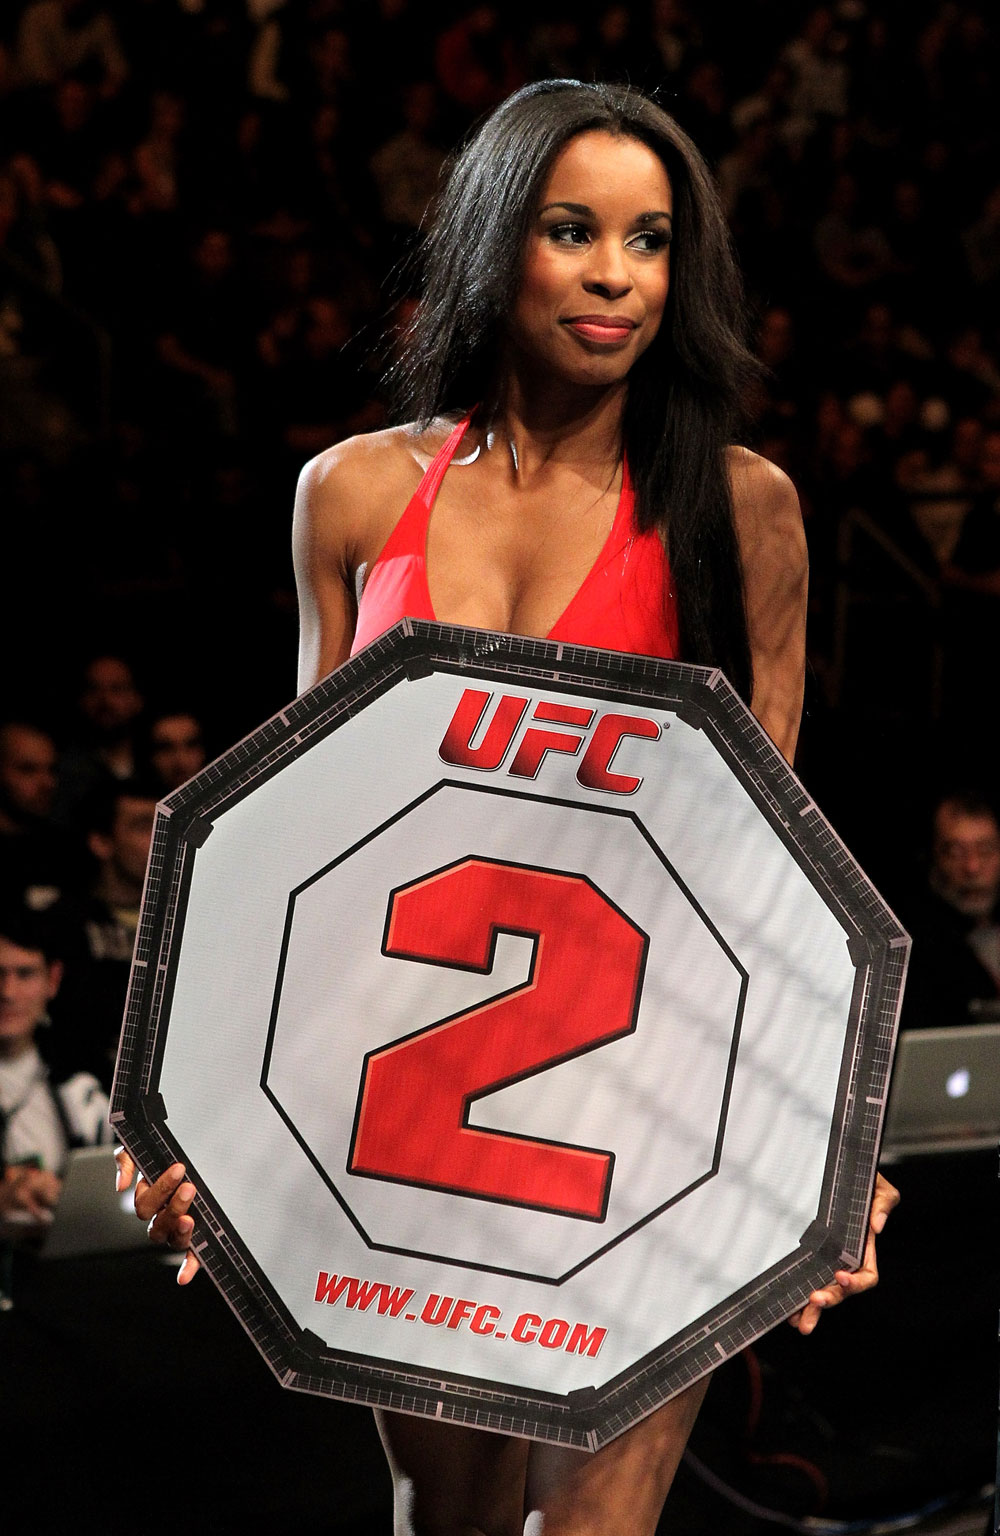 A UFC ring girl parades around the ring during the Pascal Krauss of Germany versus Marc Scanlon of the United Kingdom UFC Welterweight bout at the Konig Pilsner Arena on November 13, 2010 in Oberhausen, Germany. (Photo by Josh Hedges/Zuffa LLC/Zuffa LLC)